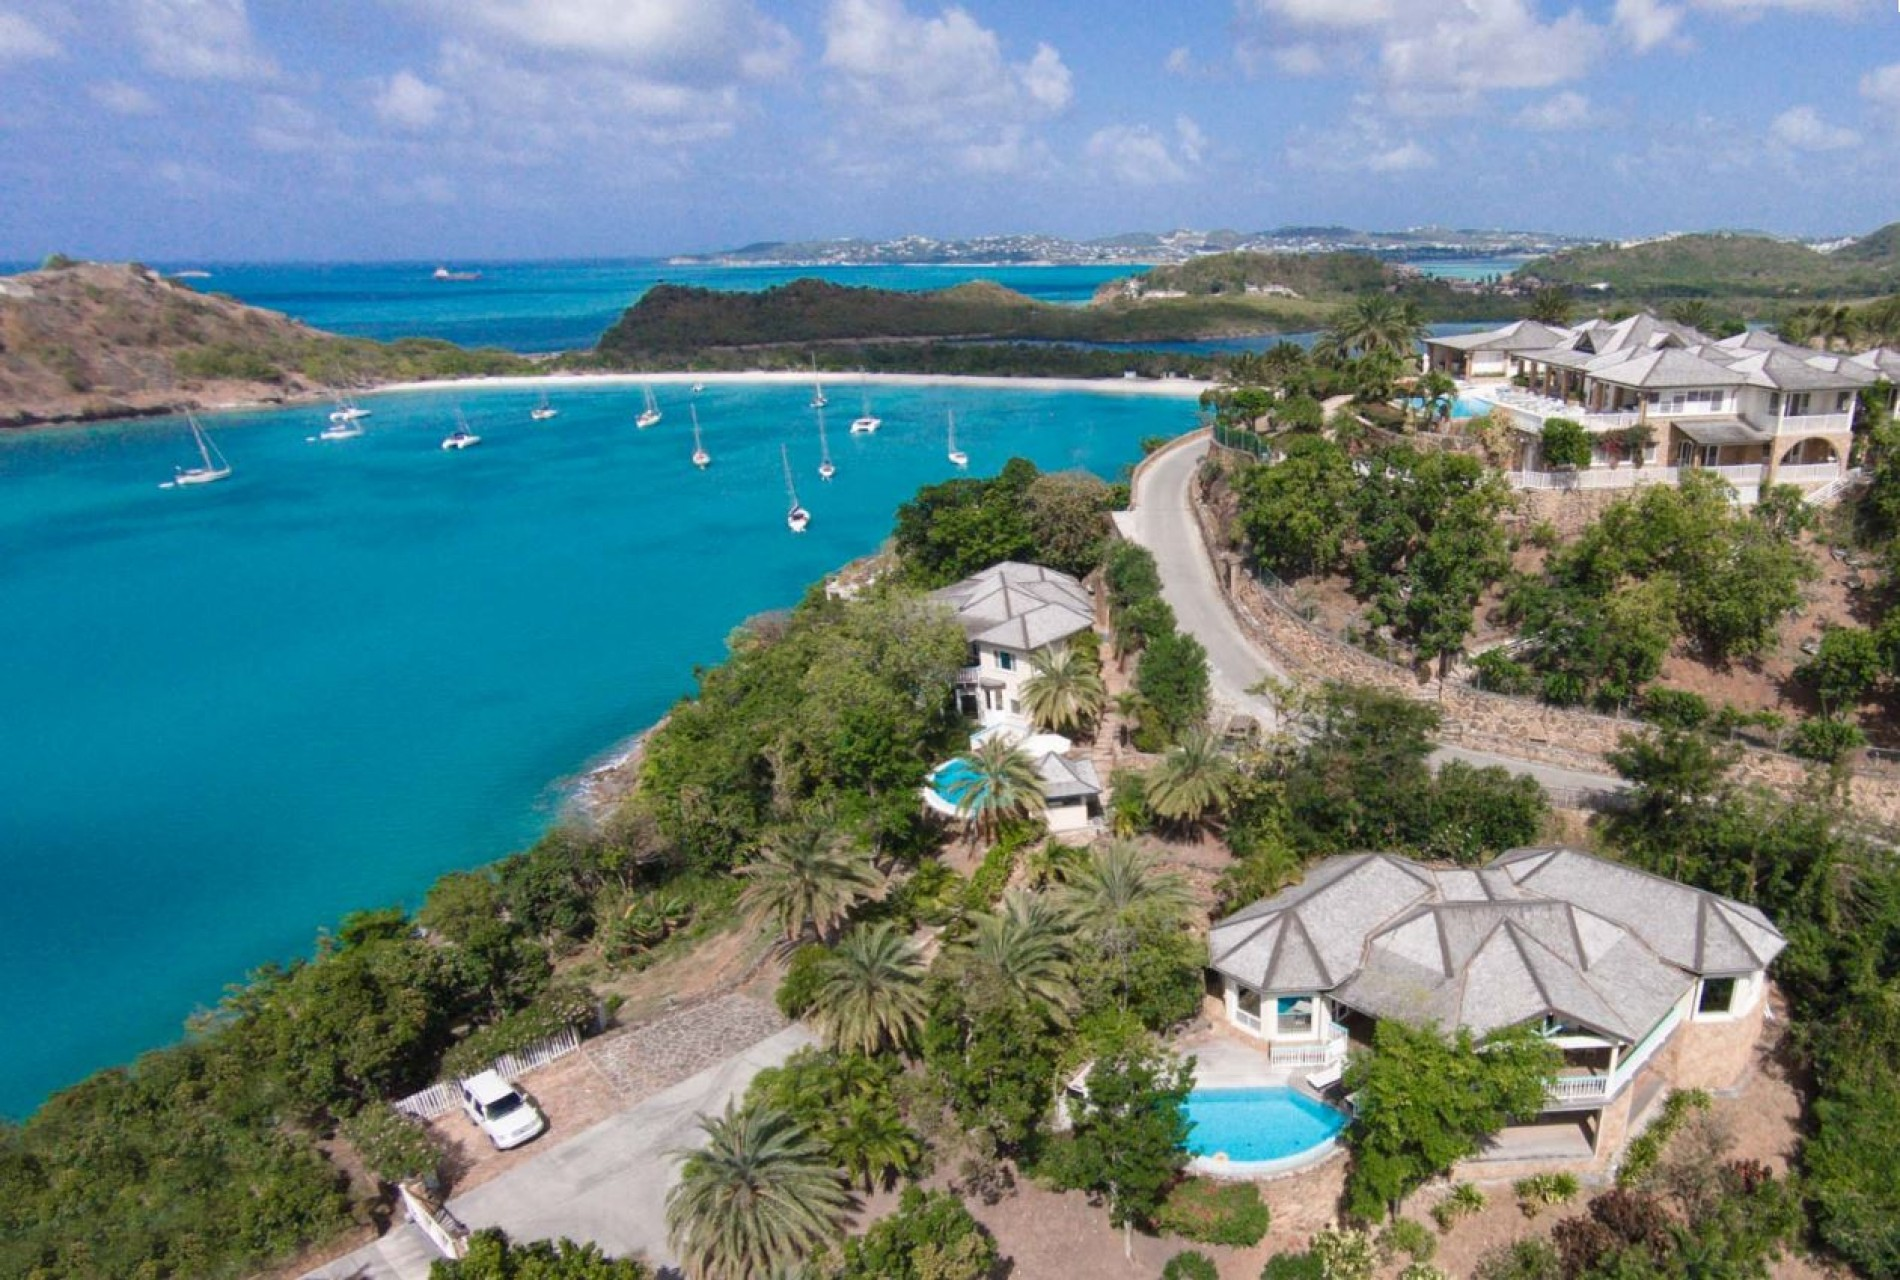 Galley bay antigua pictures 57 stunning images from the Sepoy Mutiny